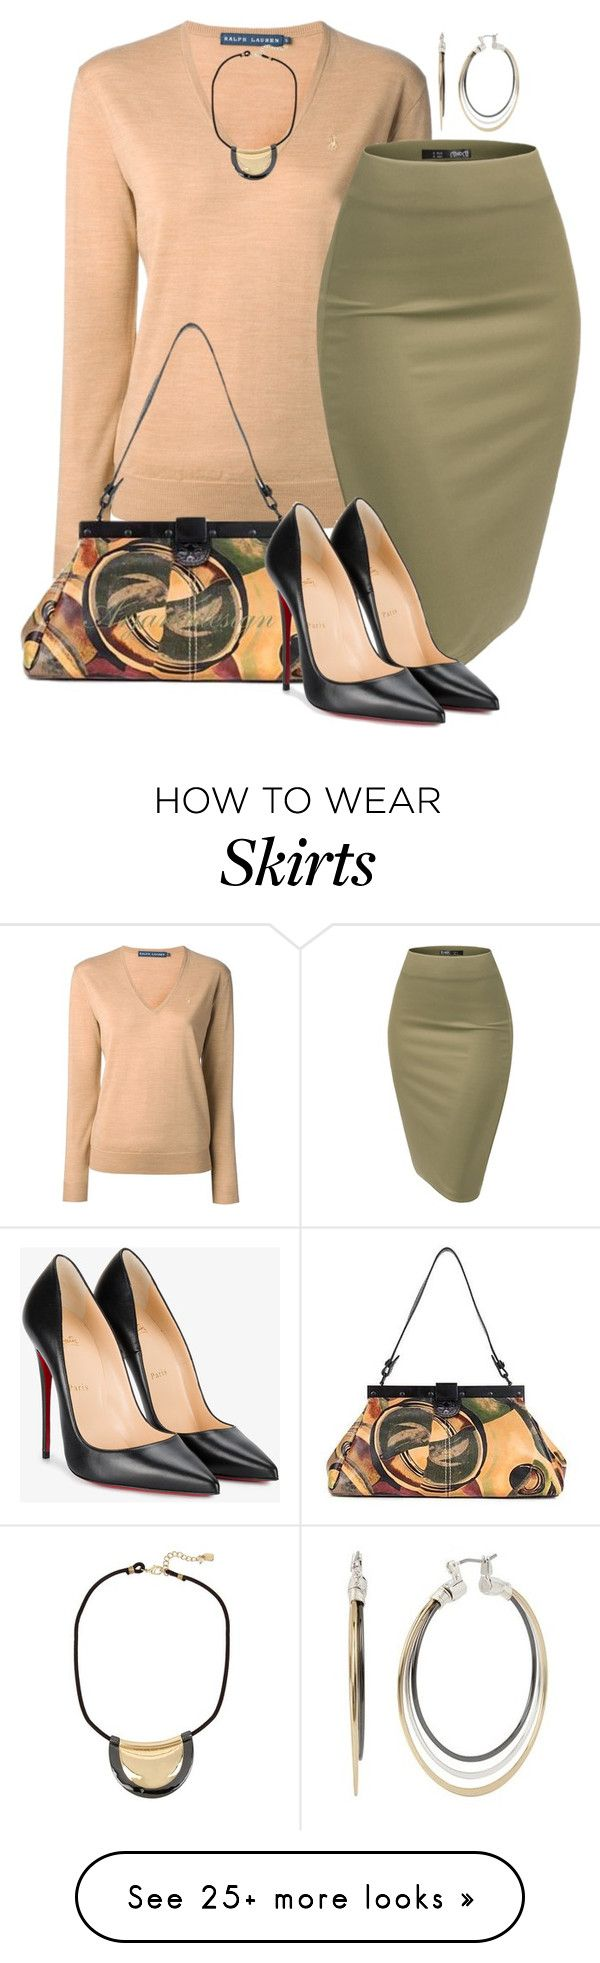 """COUNTDOWN TO FALL"" by arjanadesign on Polyvore featuring Ralph Lauren Blue Label, Patricia Nash, Christian Louboutin, christianlouboutin, ralphlauren, fall2017 and PatriciaFerrara"